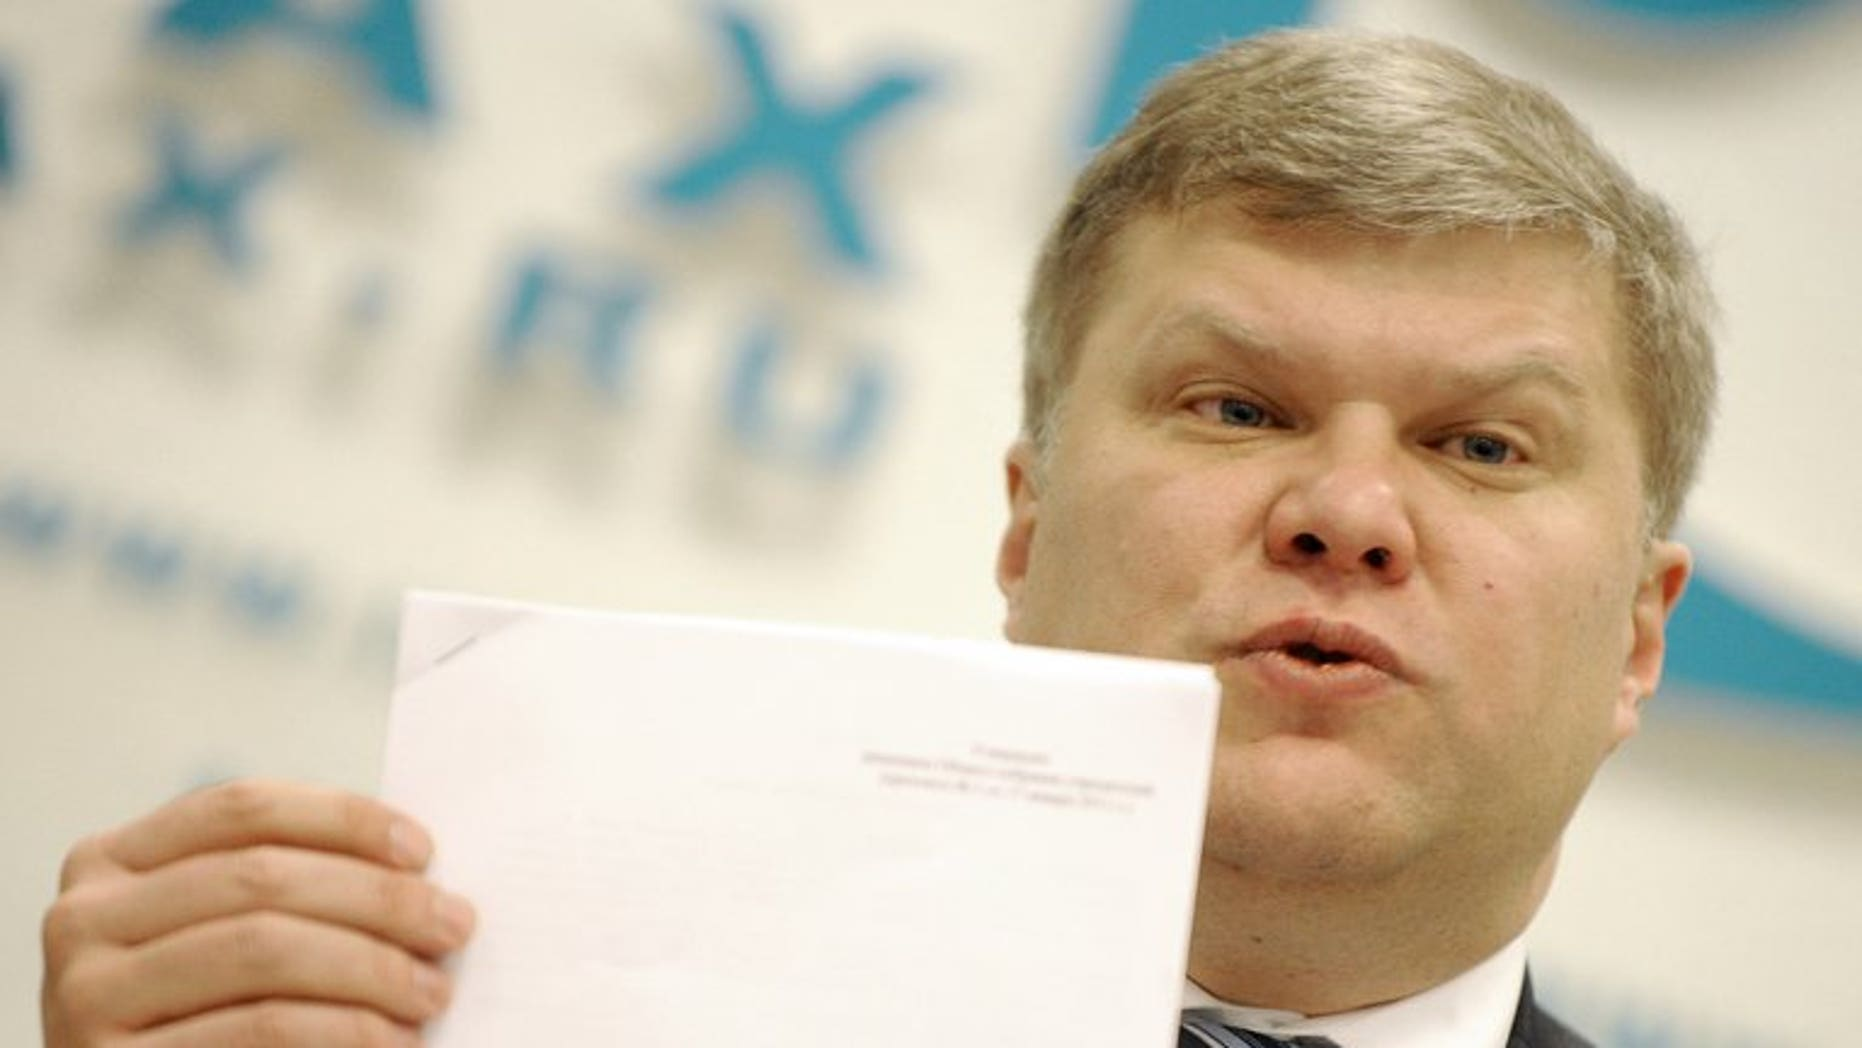 The Yabloko opposition party leader Sergei Mitrokhin speaks during a press conference in Moscow, on January 16, 2012. The head of a top Russian rights group and Mitrokhin say they been assaulted by riot police during a night-time raid on the non-profit group in the latest crackdown on activists during Vladimir Putin's new term.